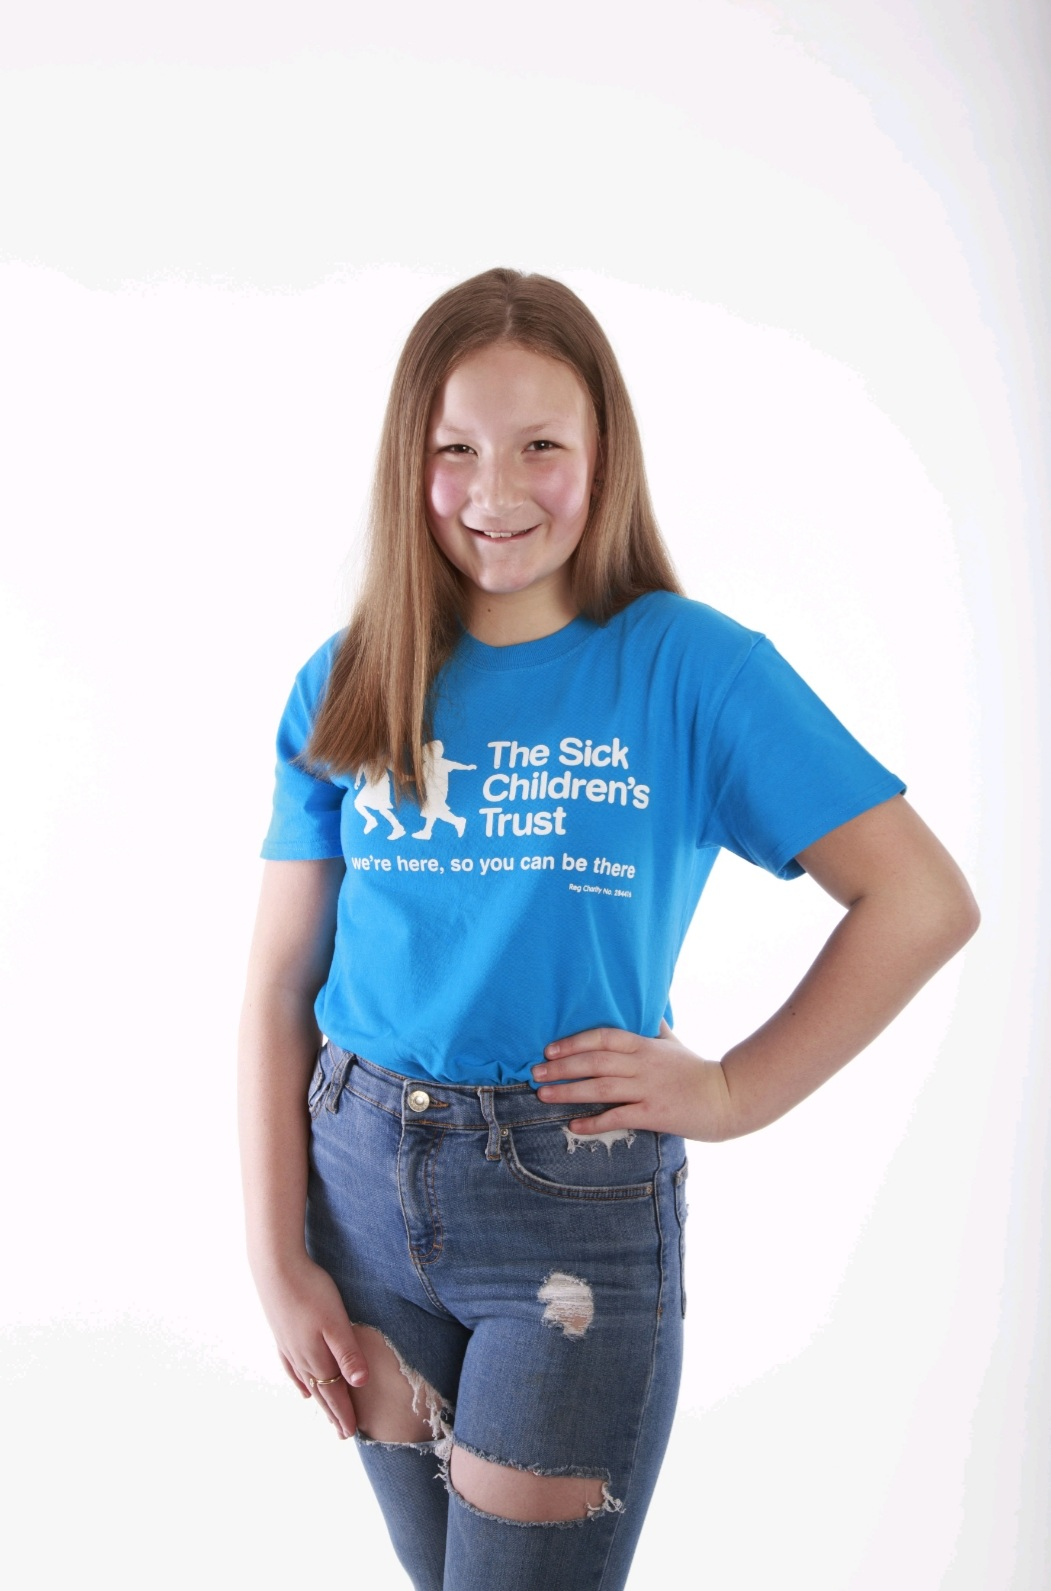 <p>12 year old pageant finalist Utilizes platform to Assist families with seriously ill children in Newcastle hospitals thumbnail